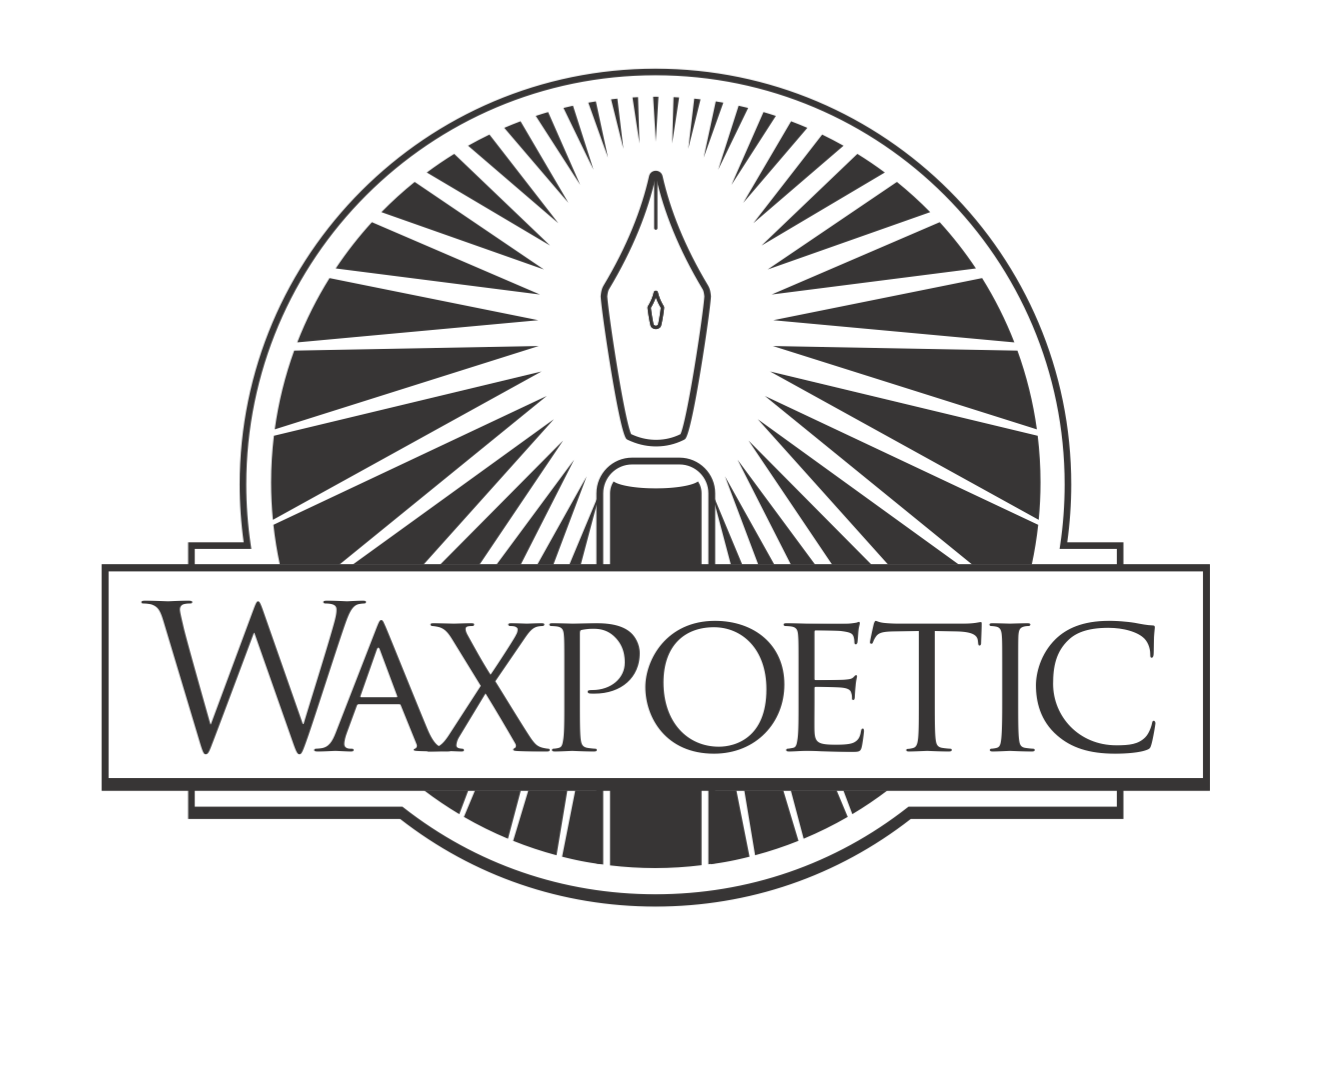 A client that chose a poetic name under which to sell candles deserved a smart logo.